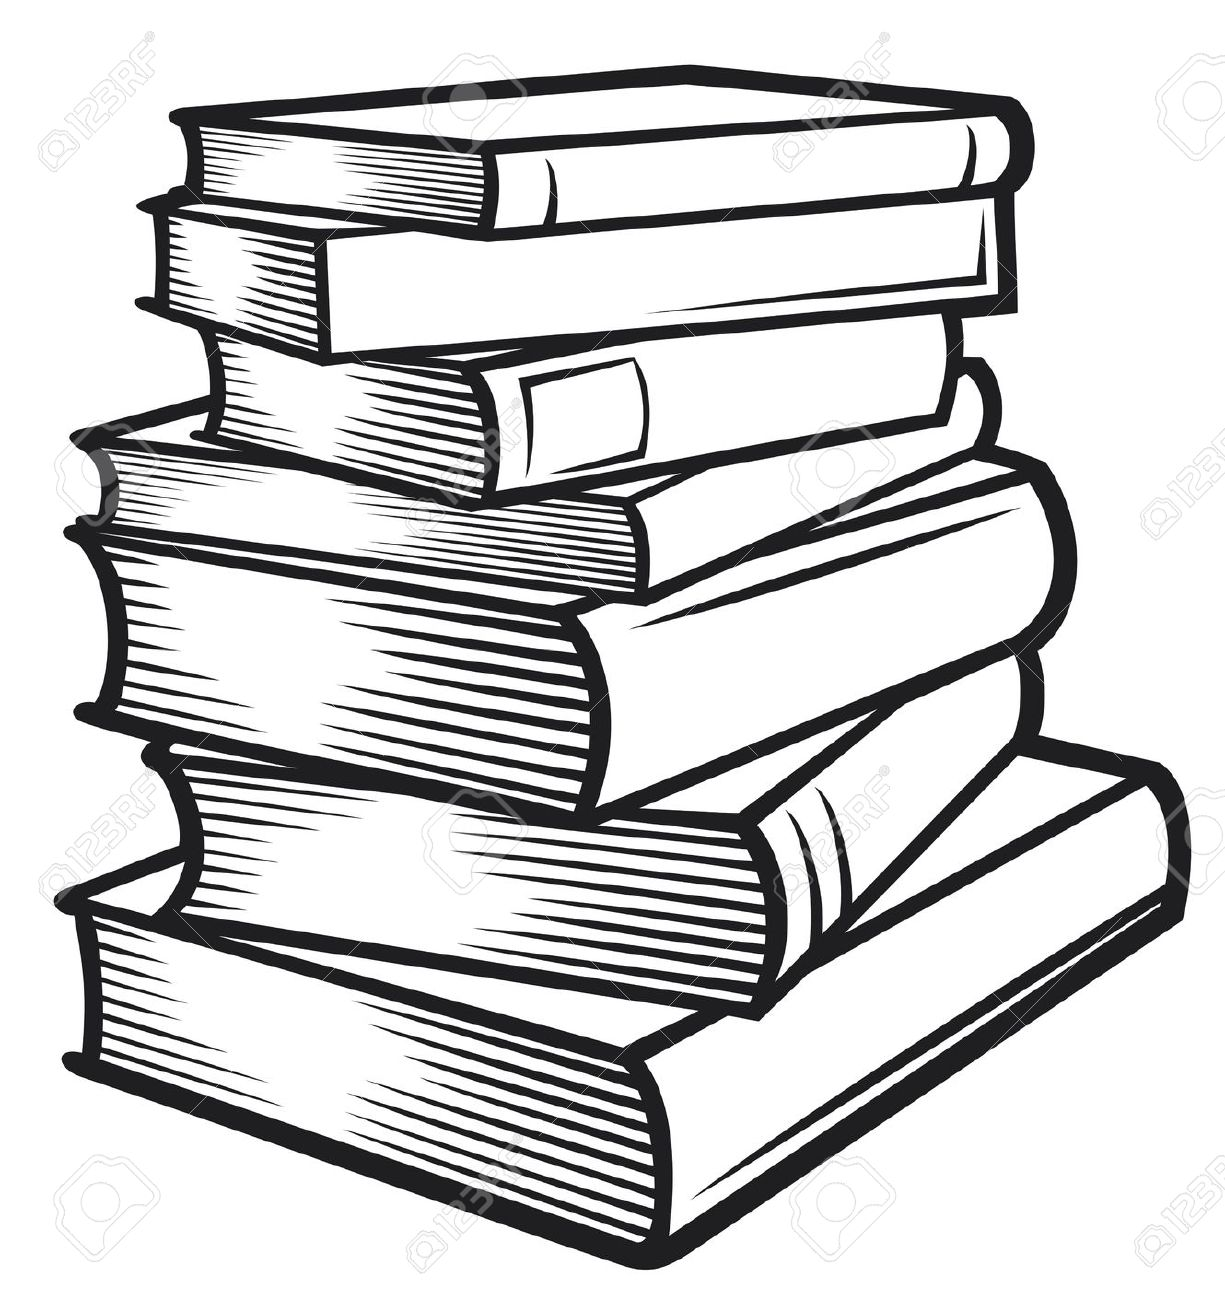 Black and white book clipart 18181